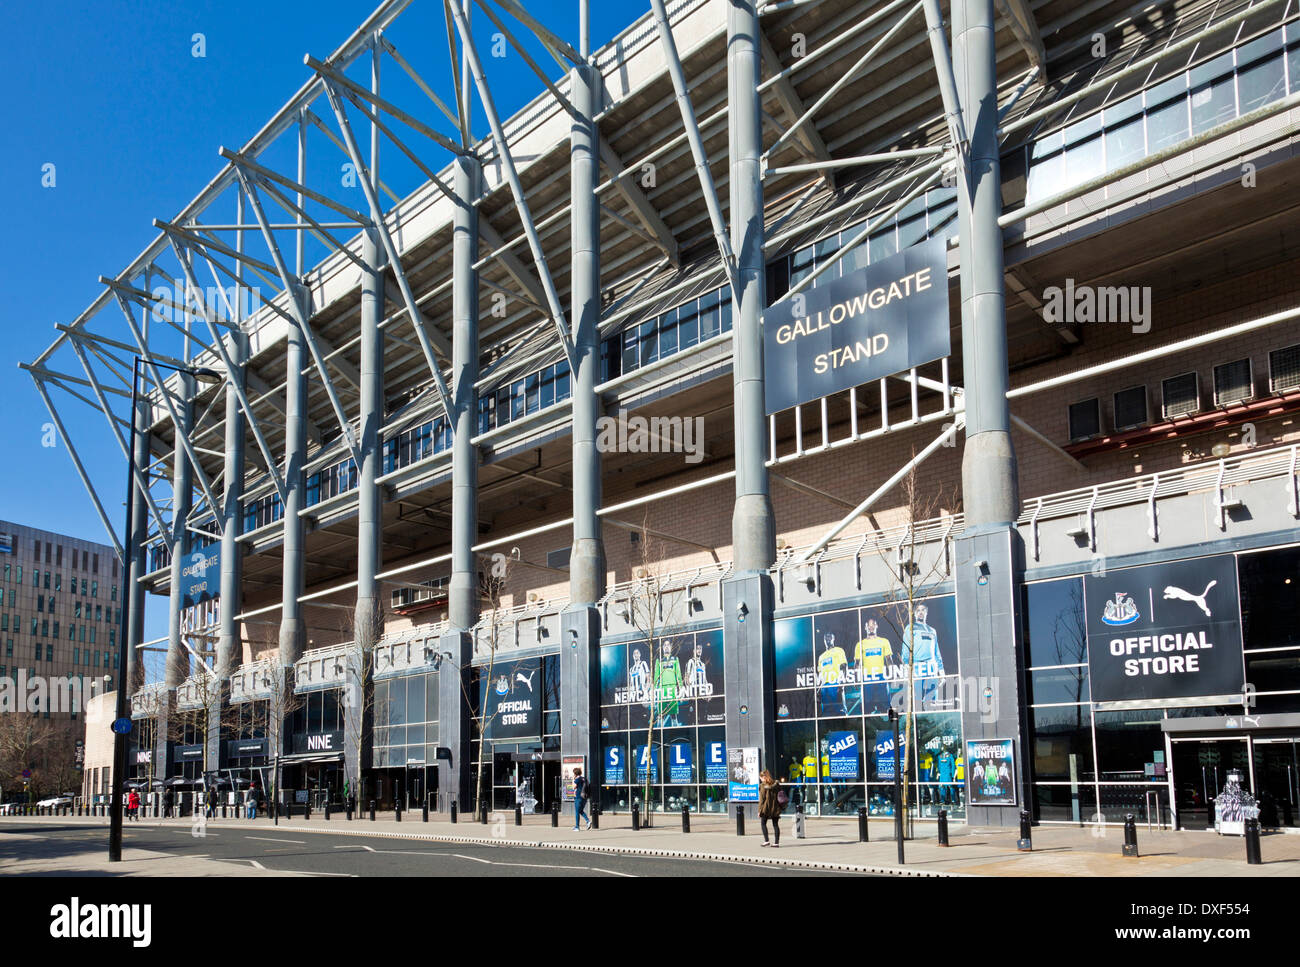 St James' Park football stadium home of Newcastle United Football club newcastle upon tyne tyneside england - Stock Image